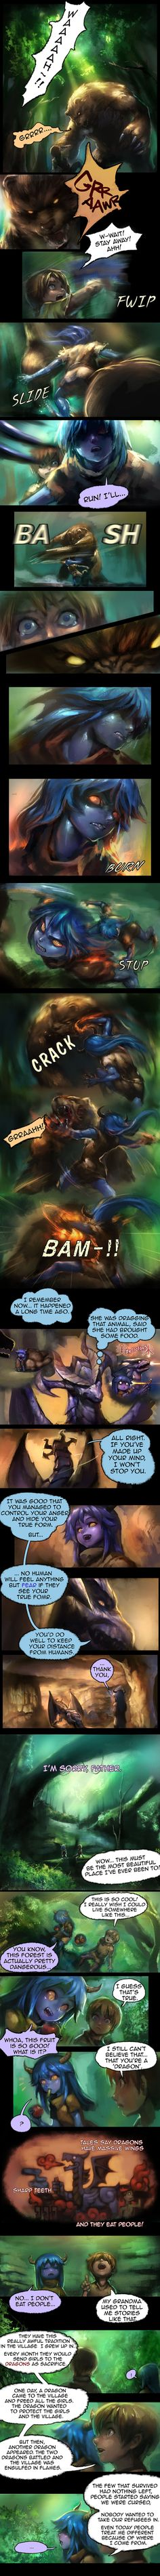 Shyvana~ The Half Dragon Tale. Page 2/6 by ptcrow.deviantart.com on @DeviantArt